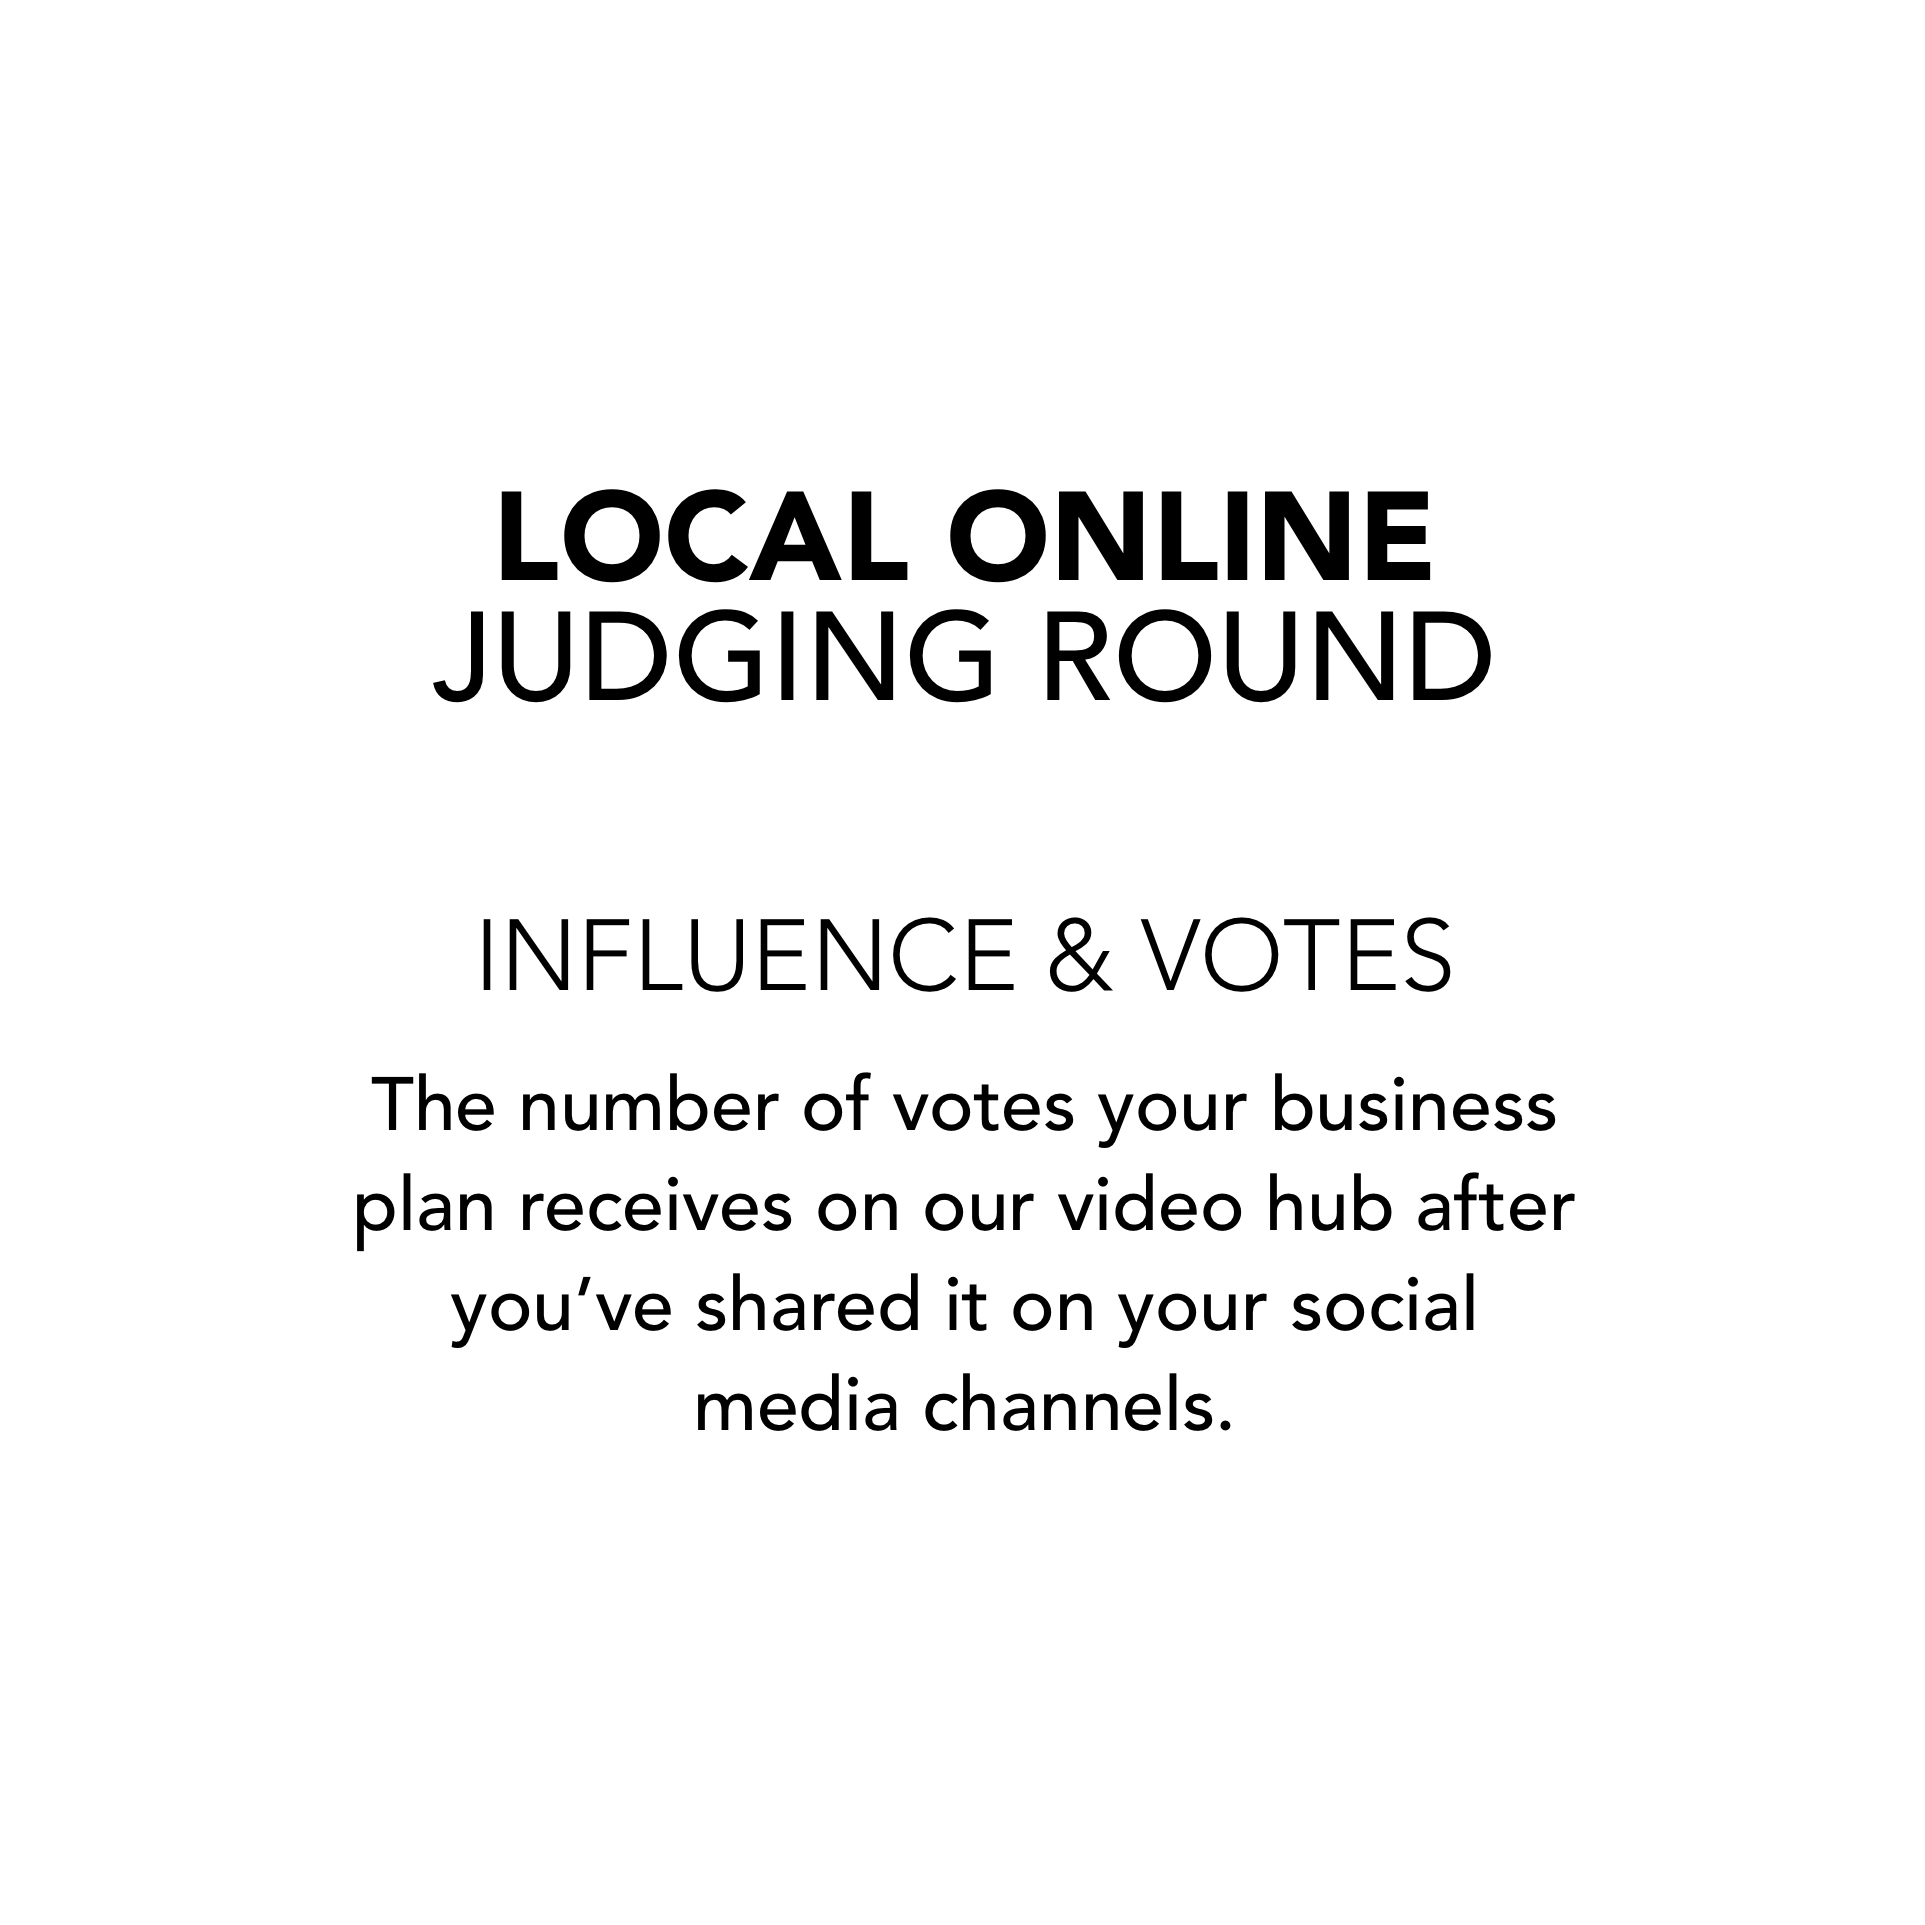 local online judging information